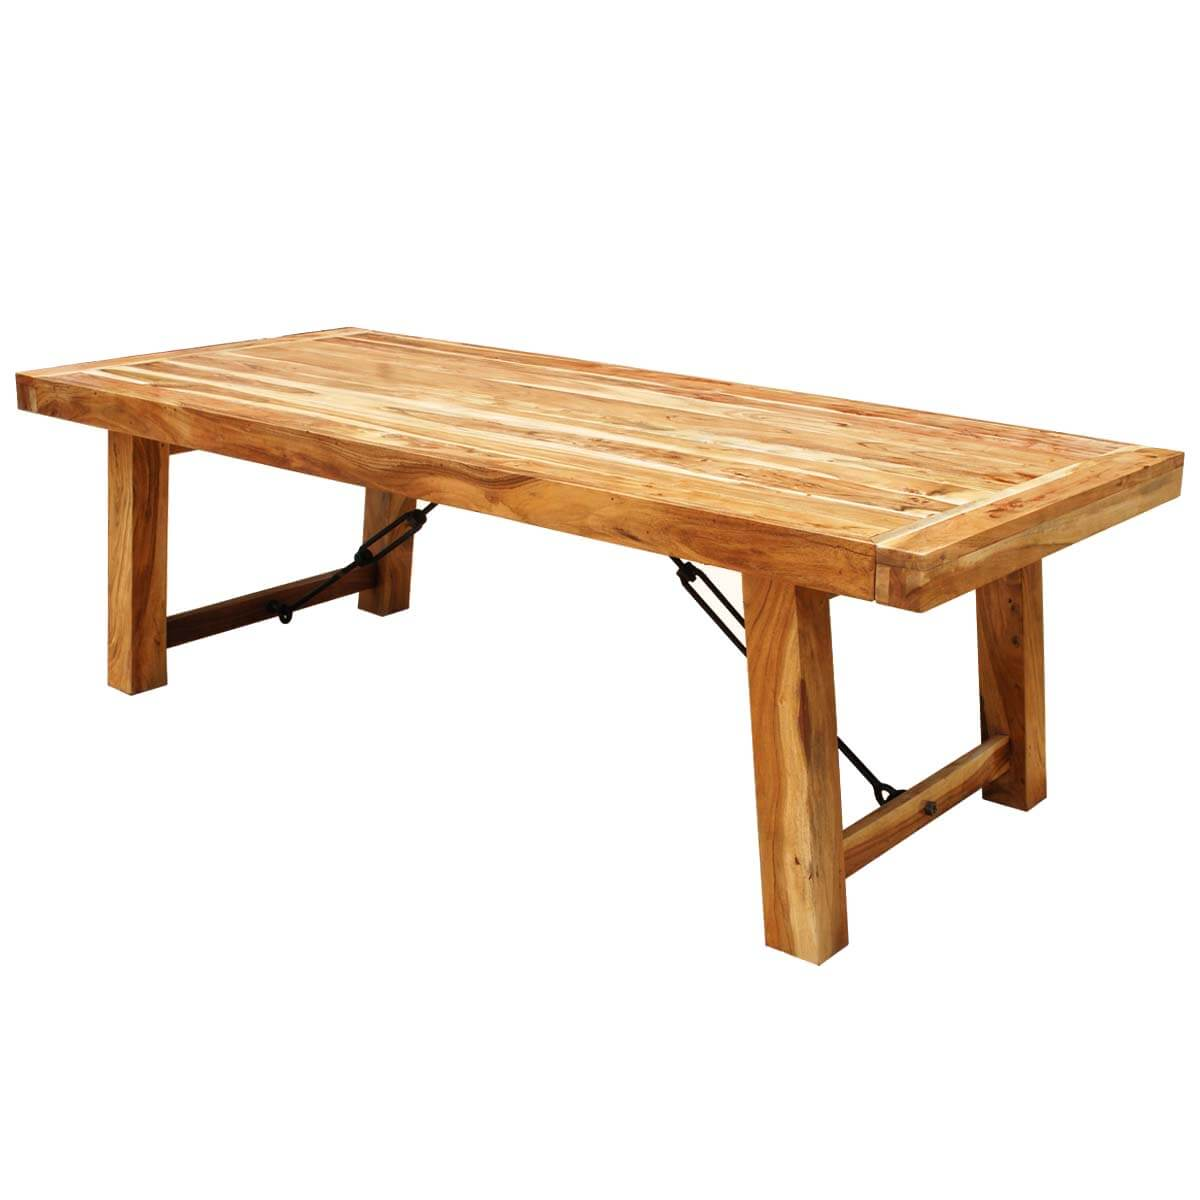 Rustic Wood Large Santa Fe Dining Room Table w Extensions